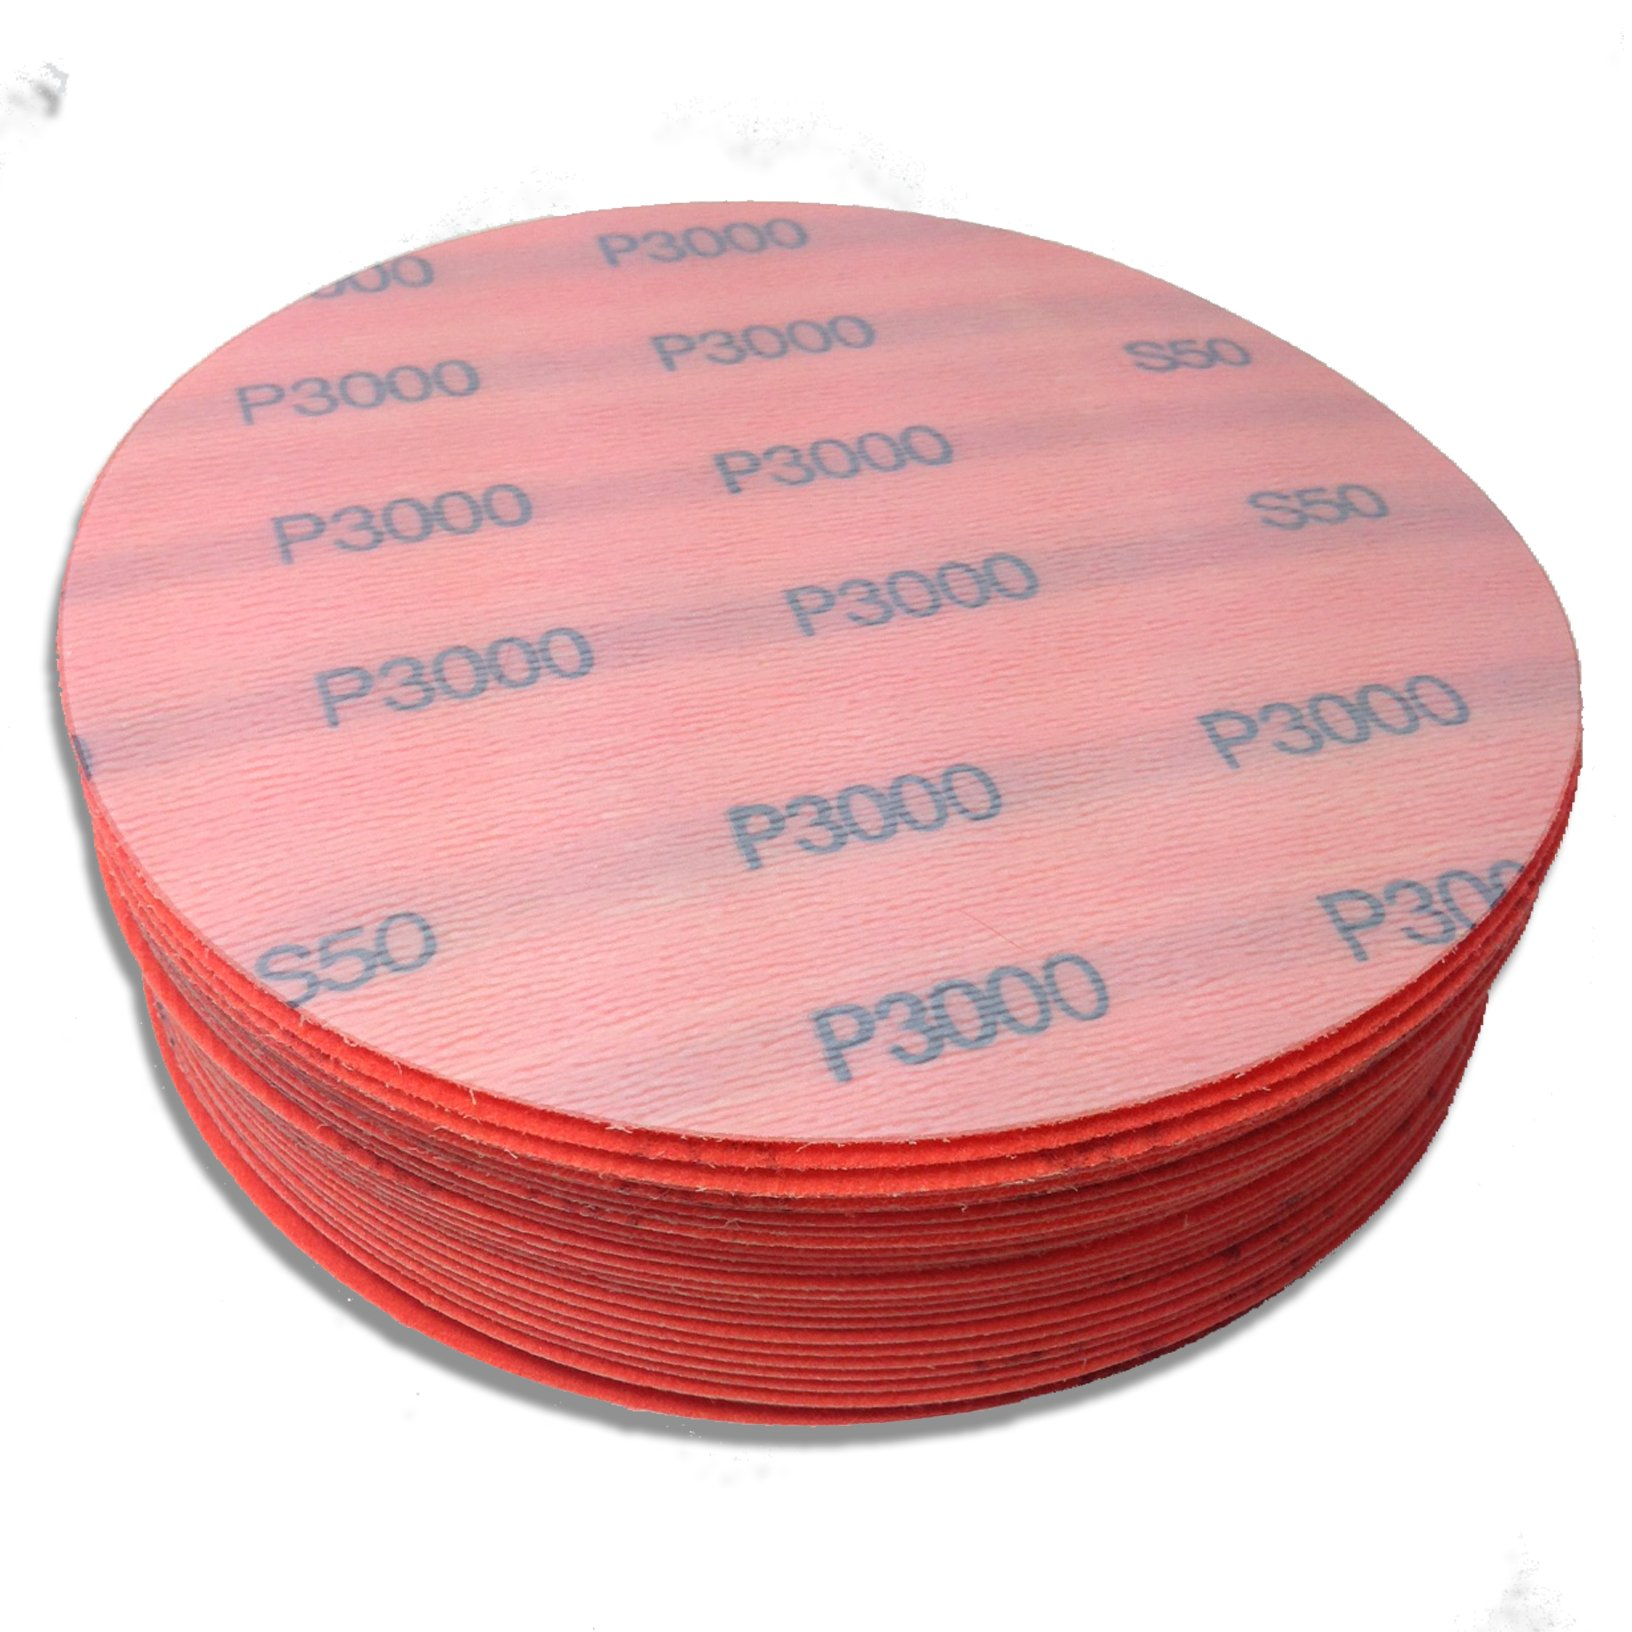 6 Inch 3000 Grit High Performance Hook and Loop Wet/Dry Auto Body Film Sanding Discs, 50 Pack